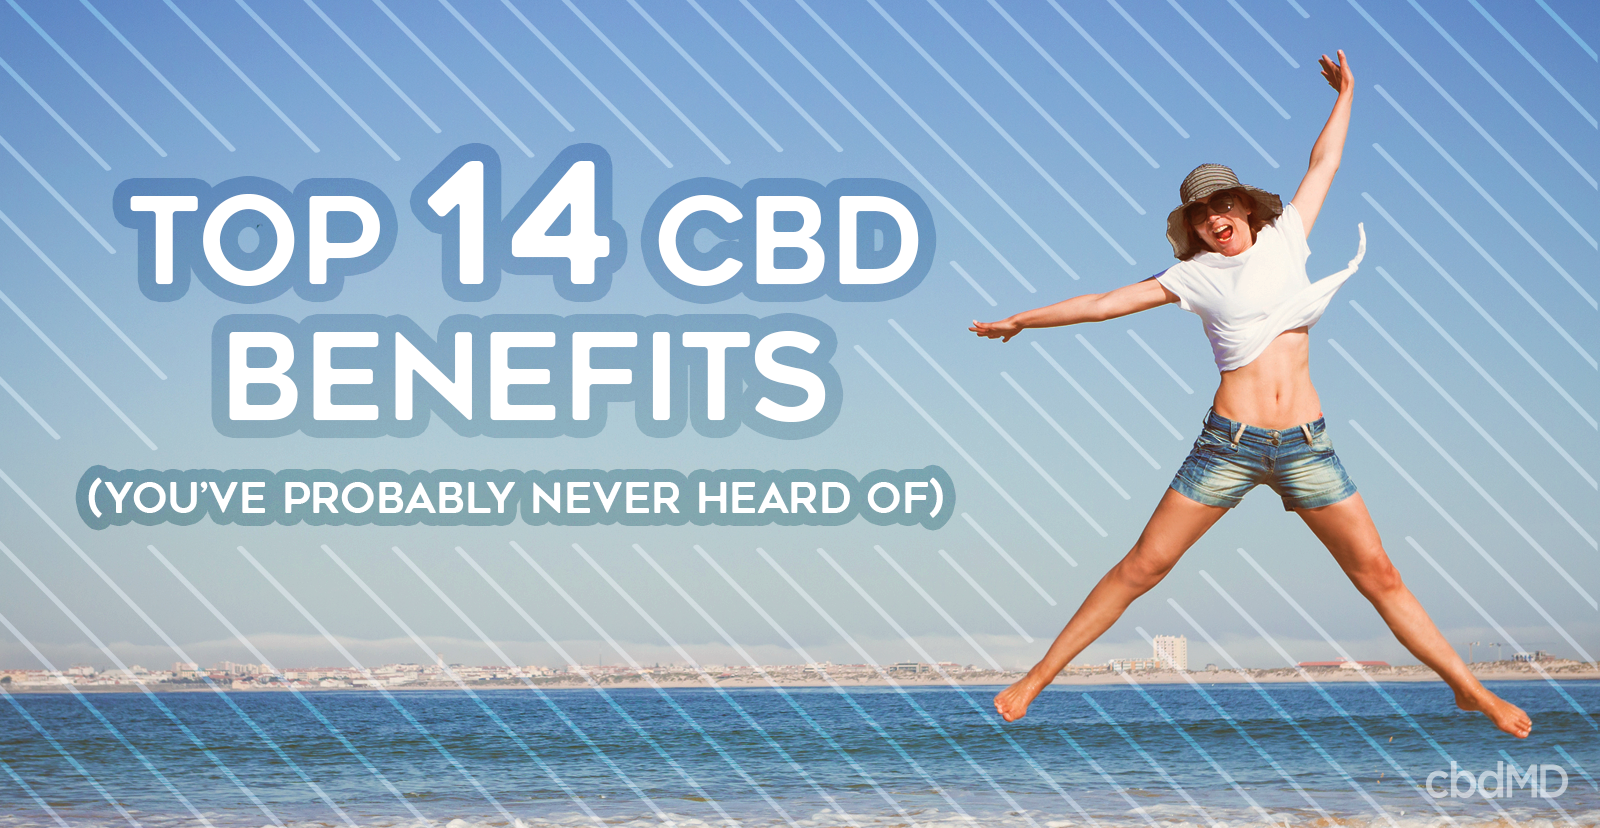 The Top 14 CBD Benefits You've Probably Never Heard Of